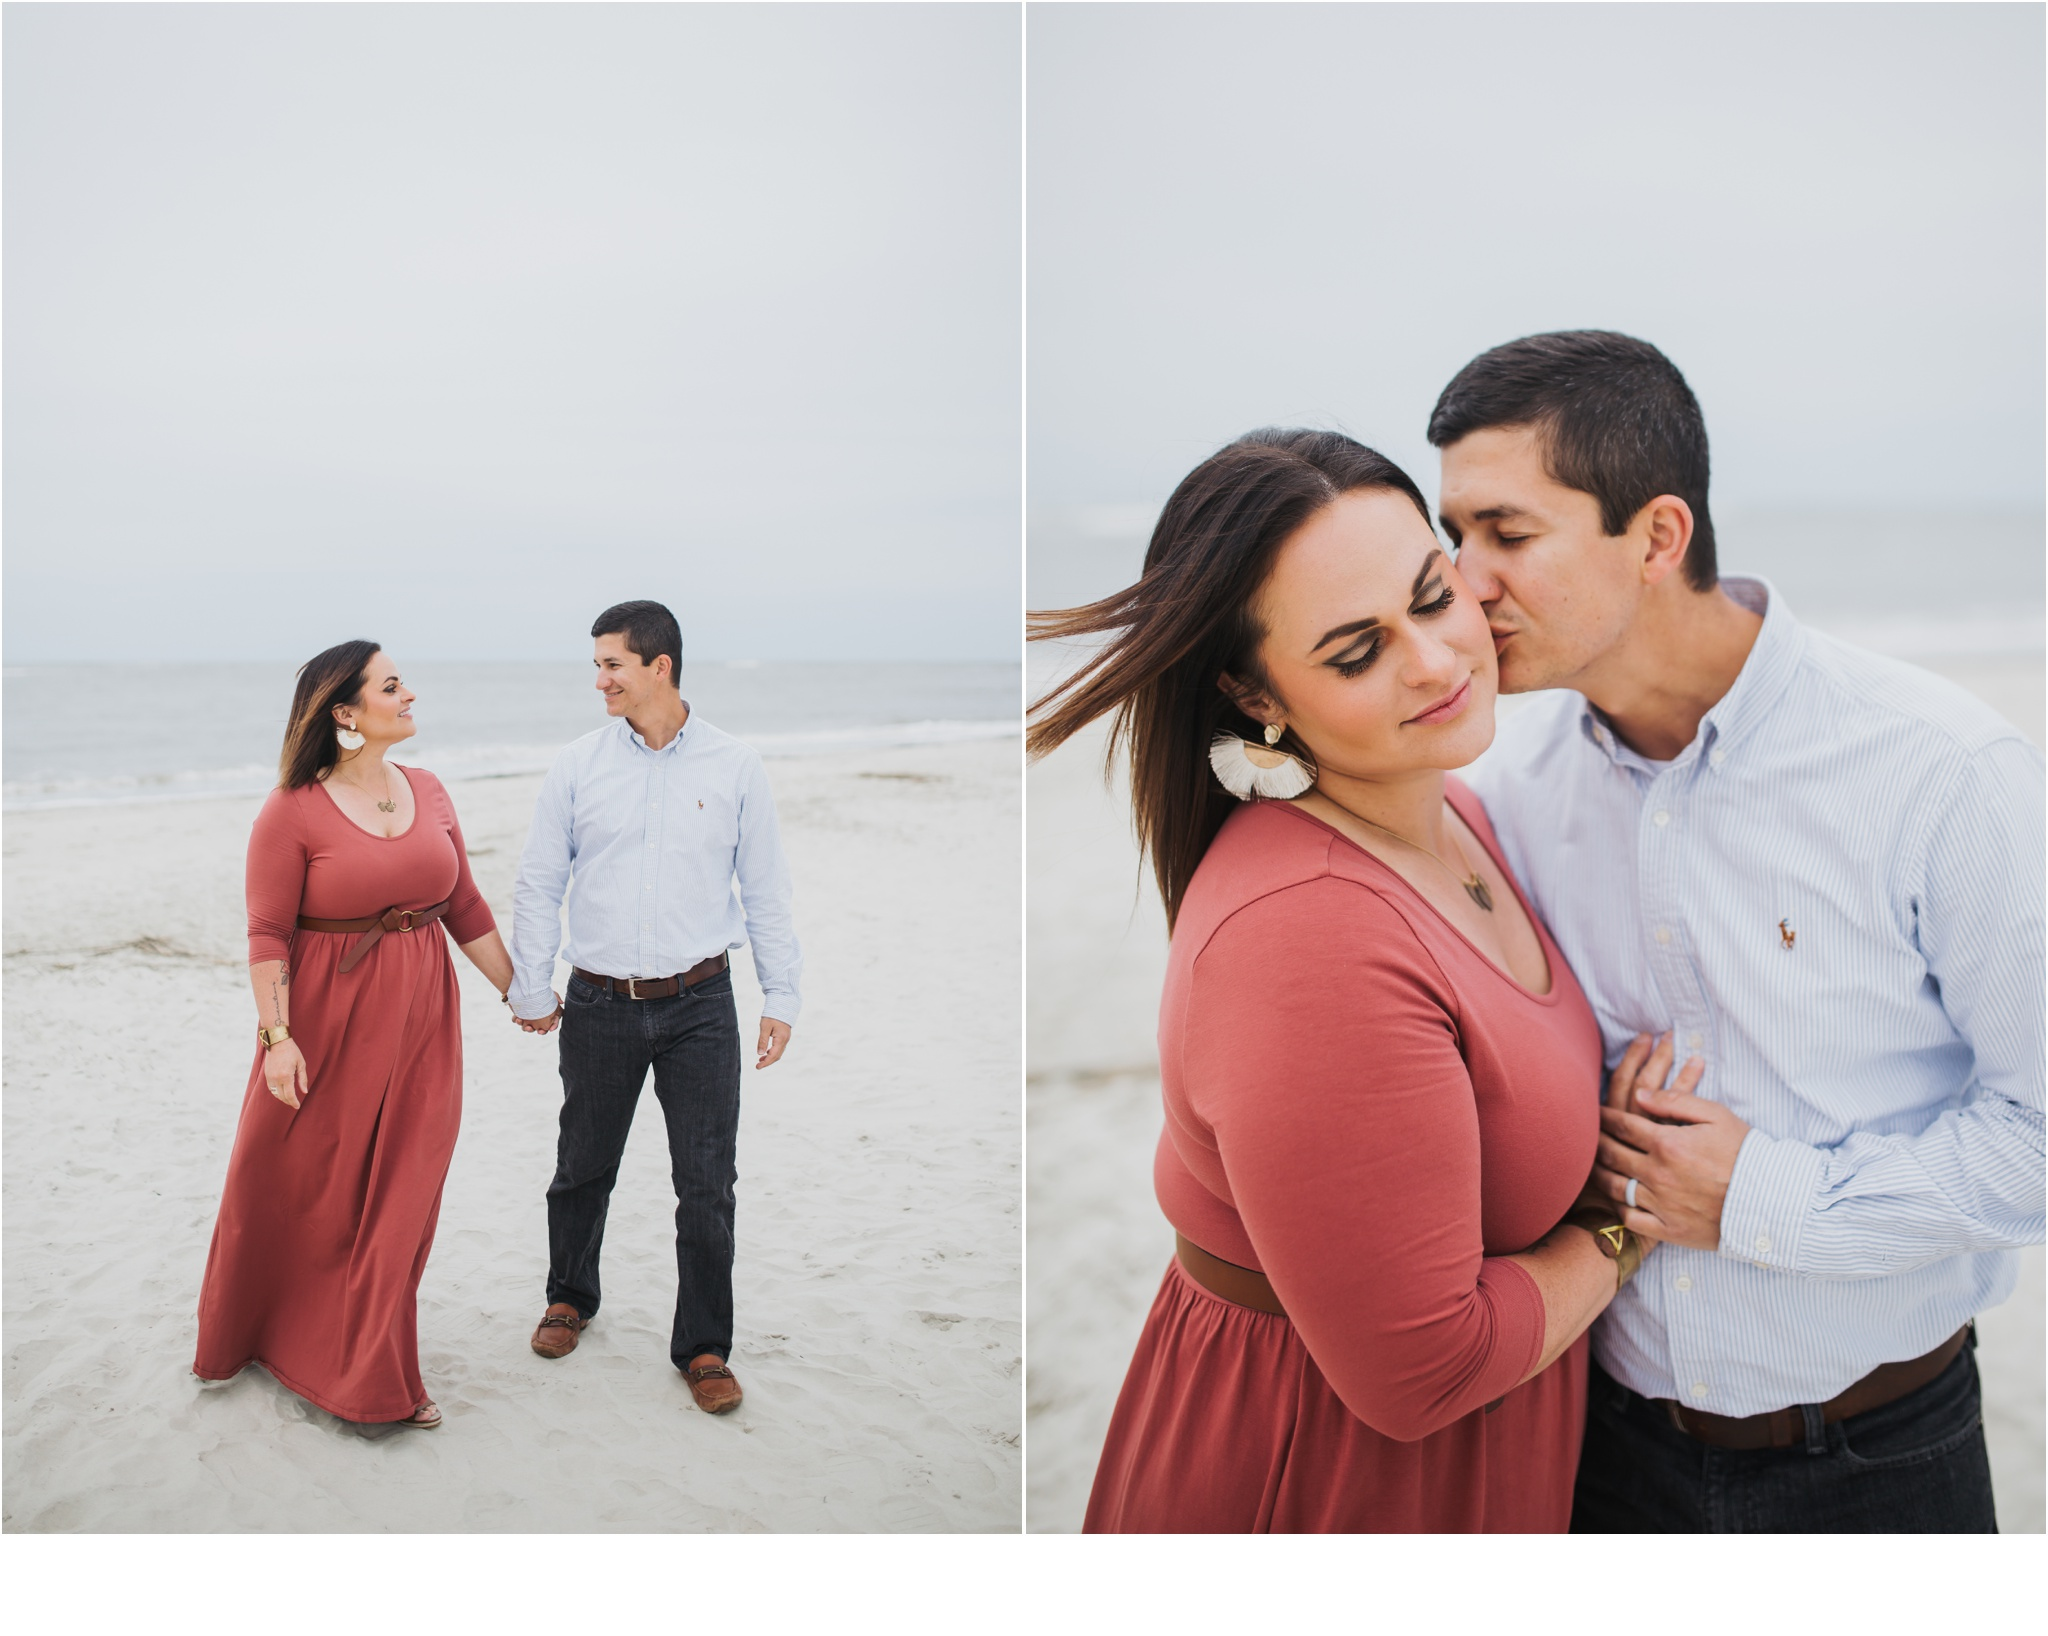 Rainey_Gregg_Photography_St._Simons_Island_Georgia_California_Wedding_Portrait_Photography_1748.jpg